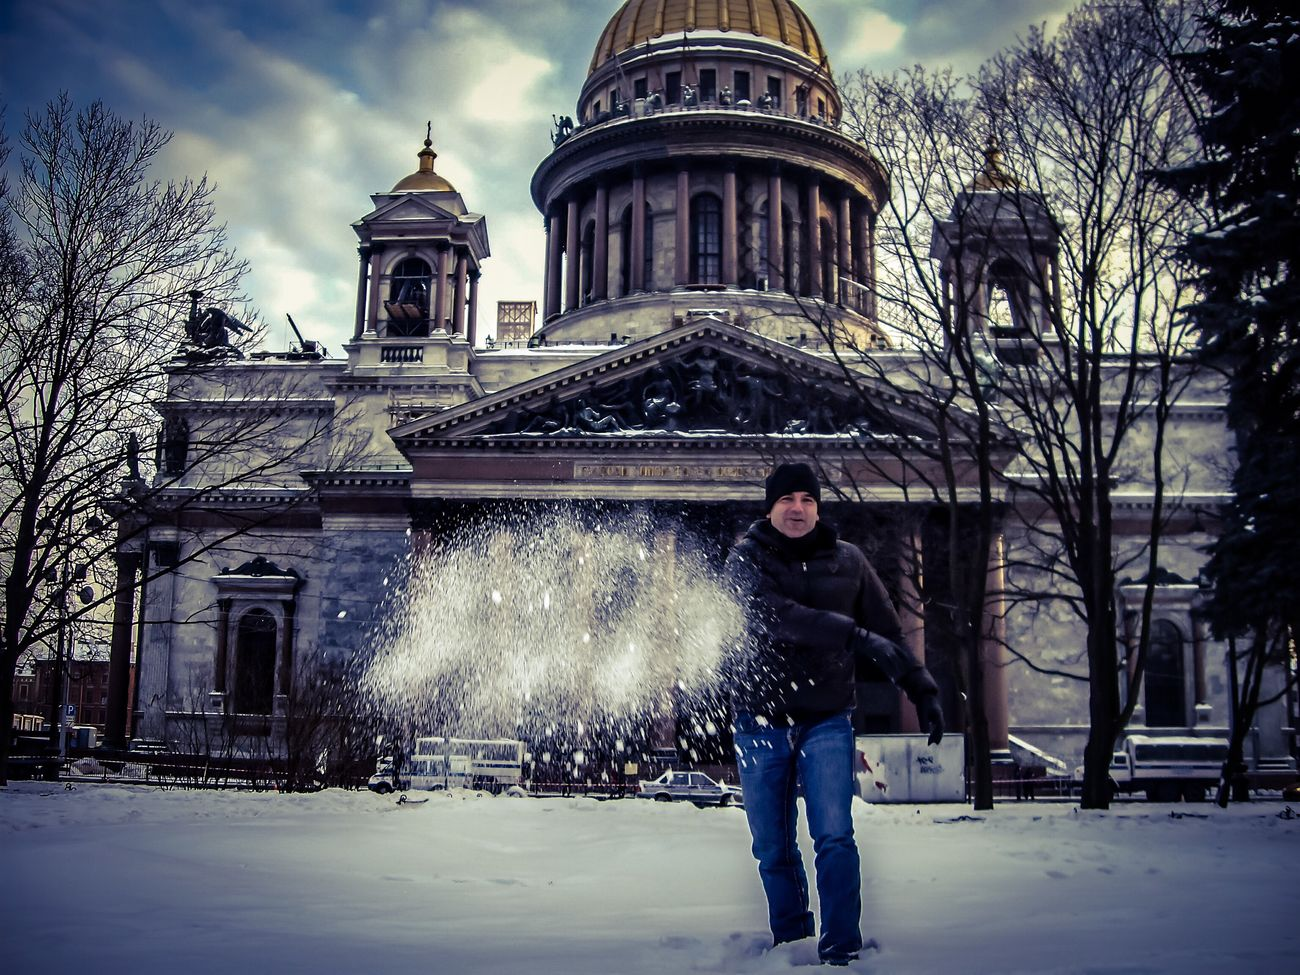 Saint Petersburg Russia Saint Isaac's Cathedral Snow ❄ Winter Snowball Cold Temperature Outdoors One Person Young Adult Adults Only Building Exterior Architecture Religion Cathedral Real People Travel Destinations Travel Photography Leisure Activity Lifestyles